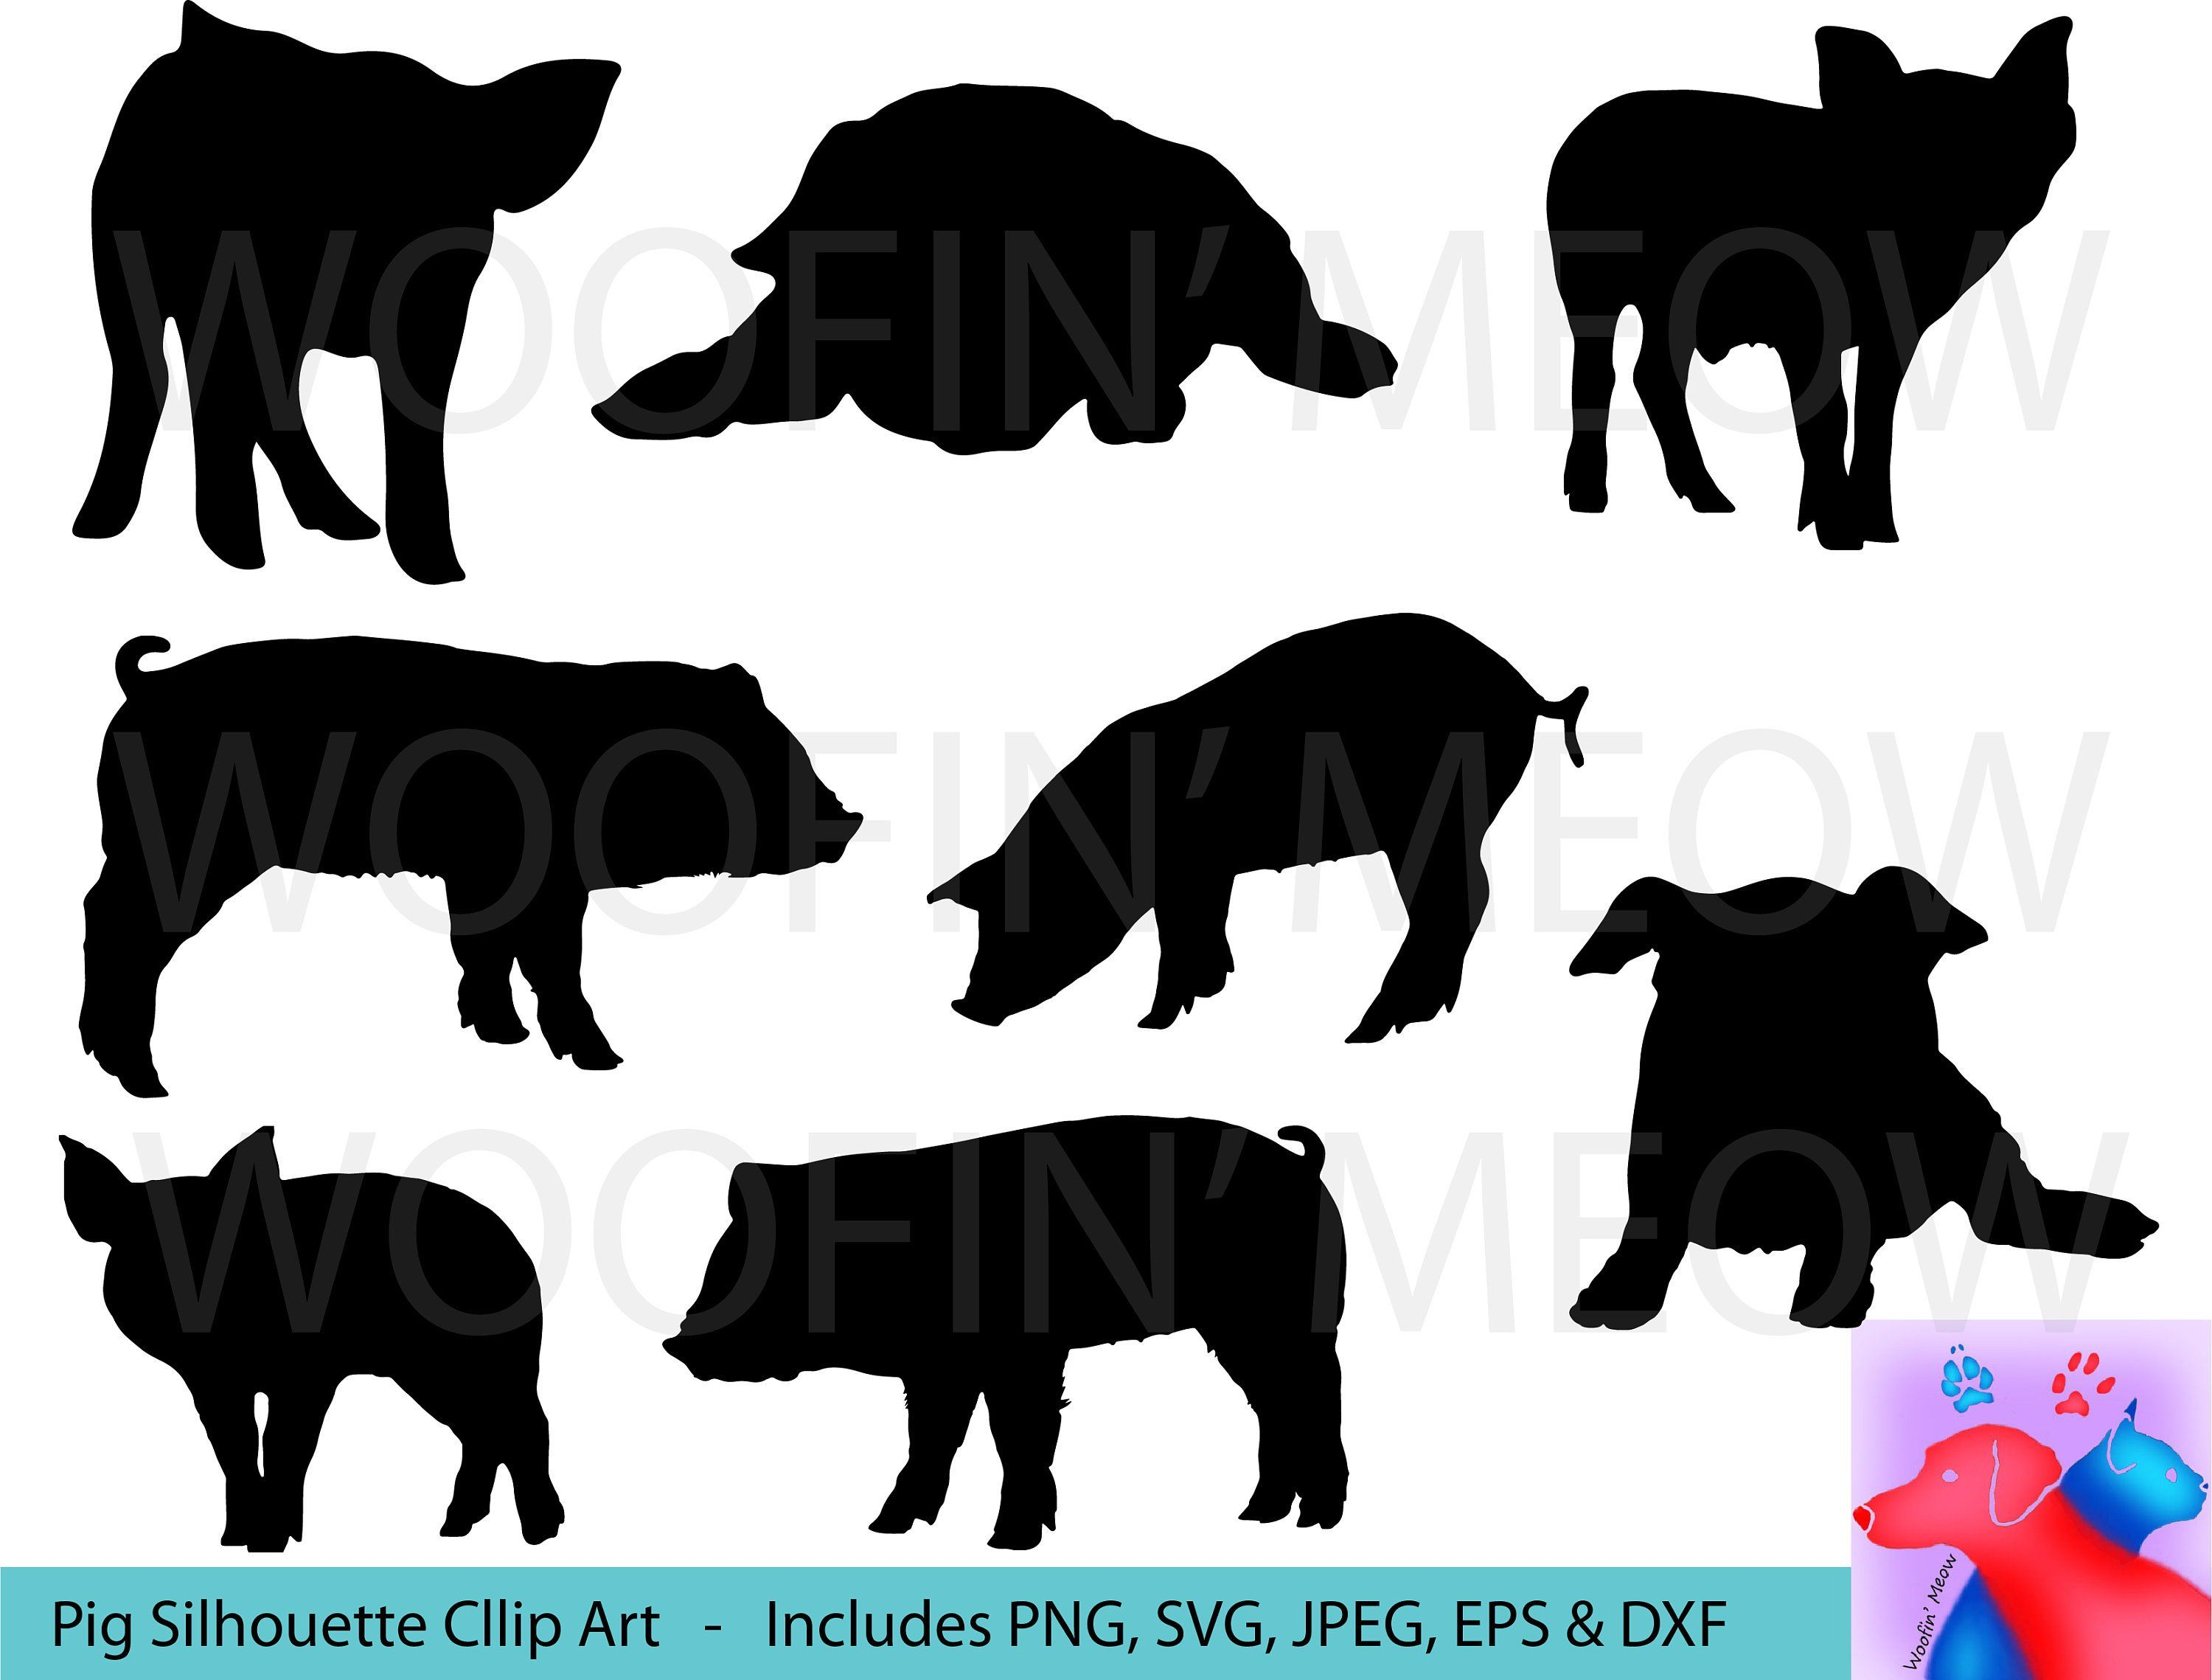 hight resolution of pig svg clipart pigs silhouette pigs vector pigs clip art pigs svg piggy svg farm animal pig decal pig silhouette instant download by woofinmeow on